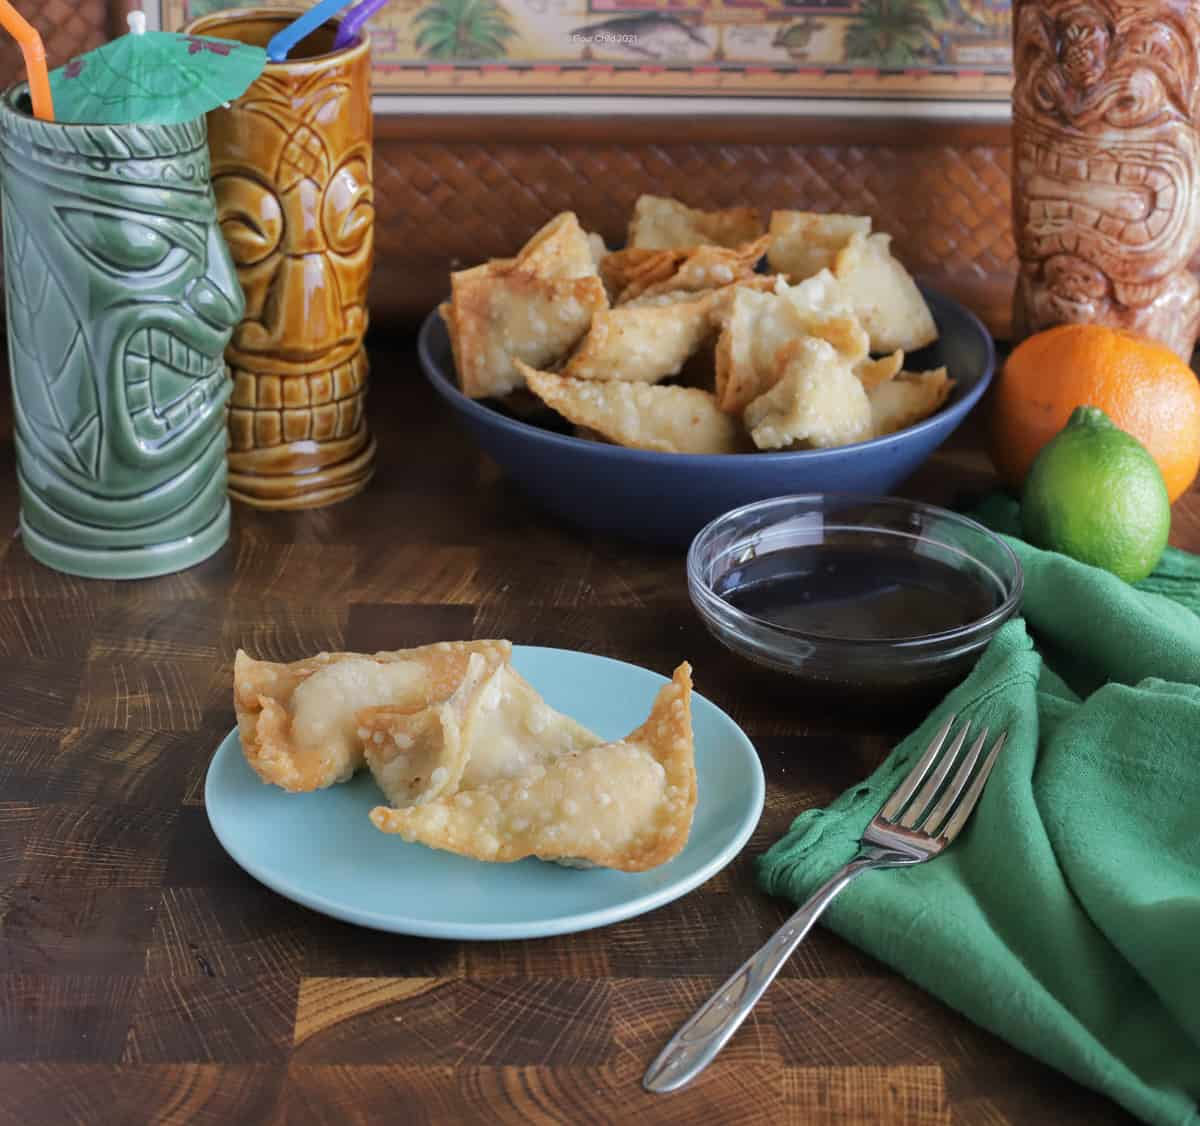 Two pieces of crab rangoon on a blue plate with a blue bowl of crab rangoon in the background